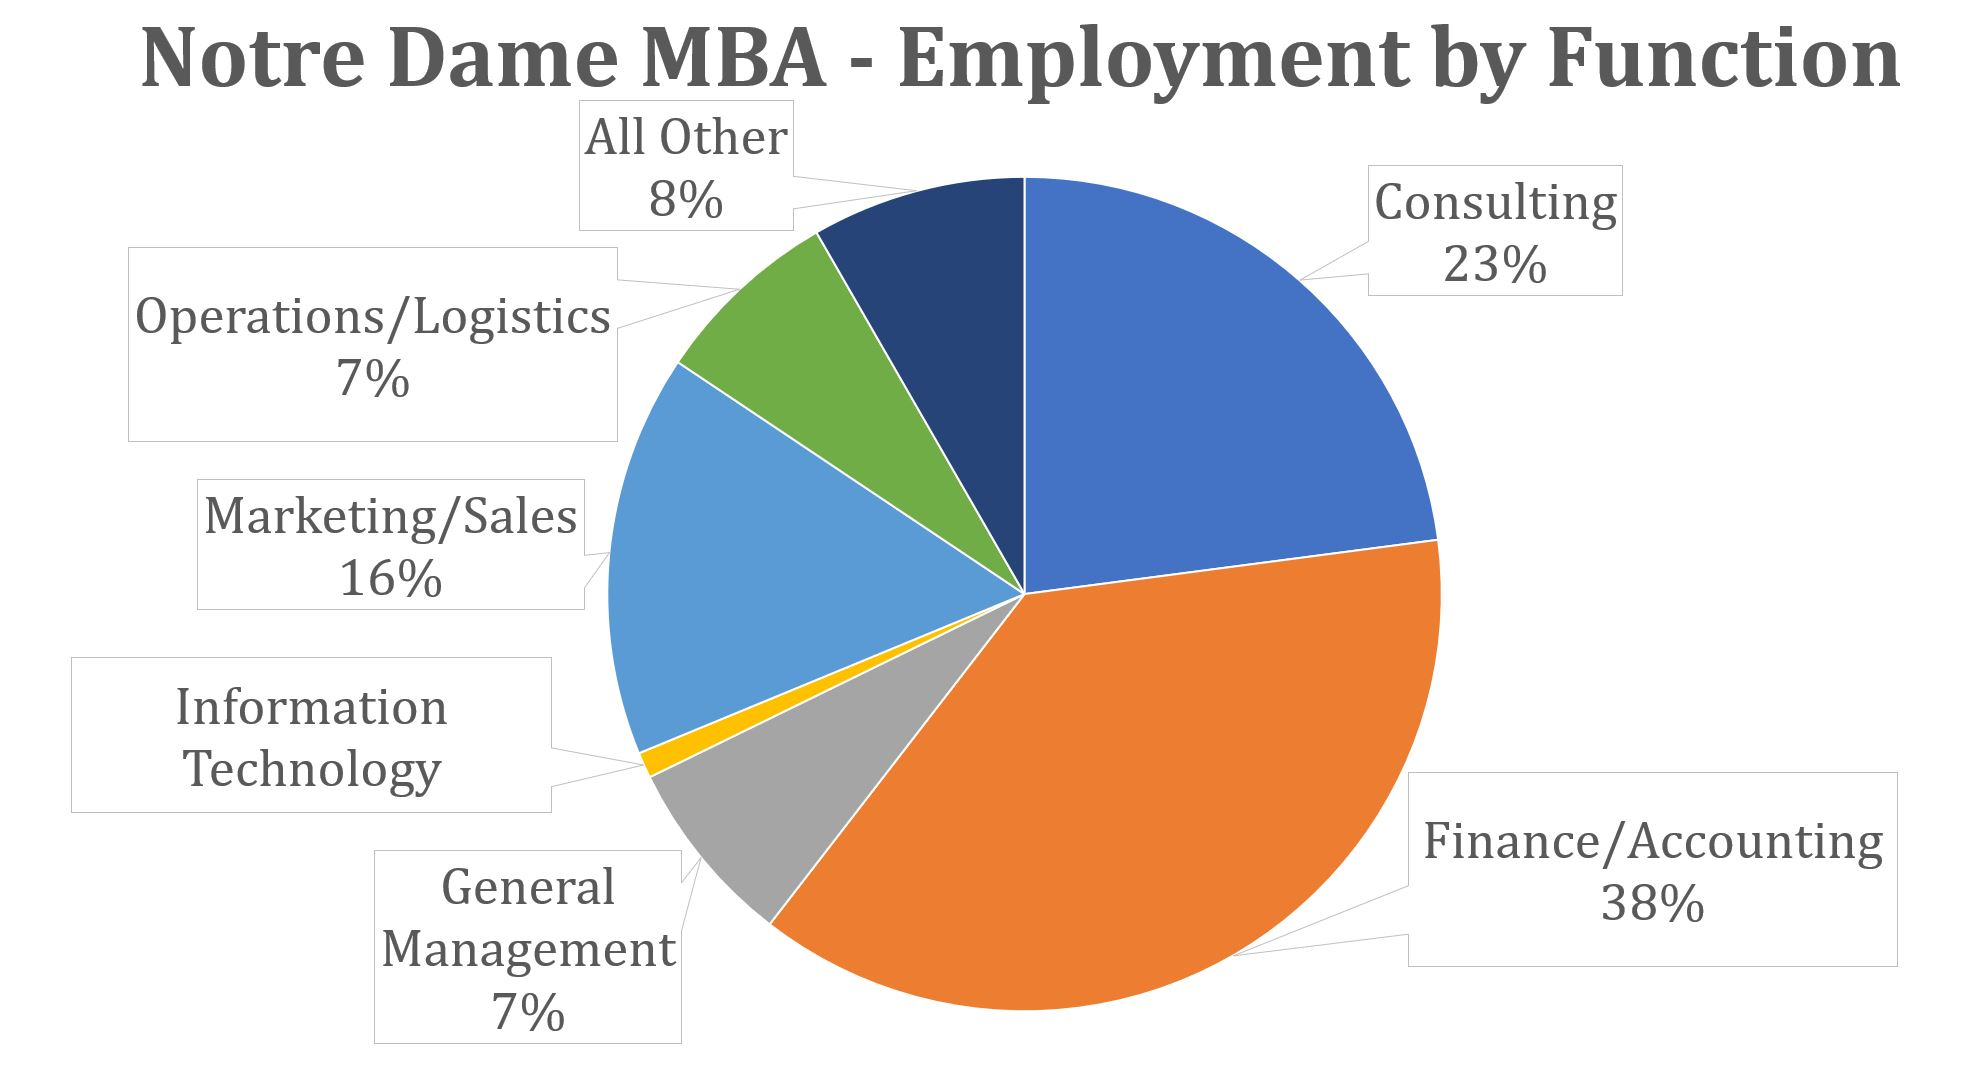 Notre Dame MBA - Employment by Function